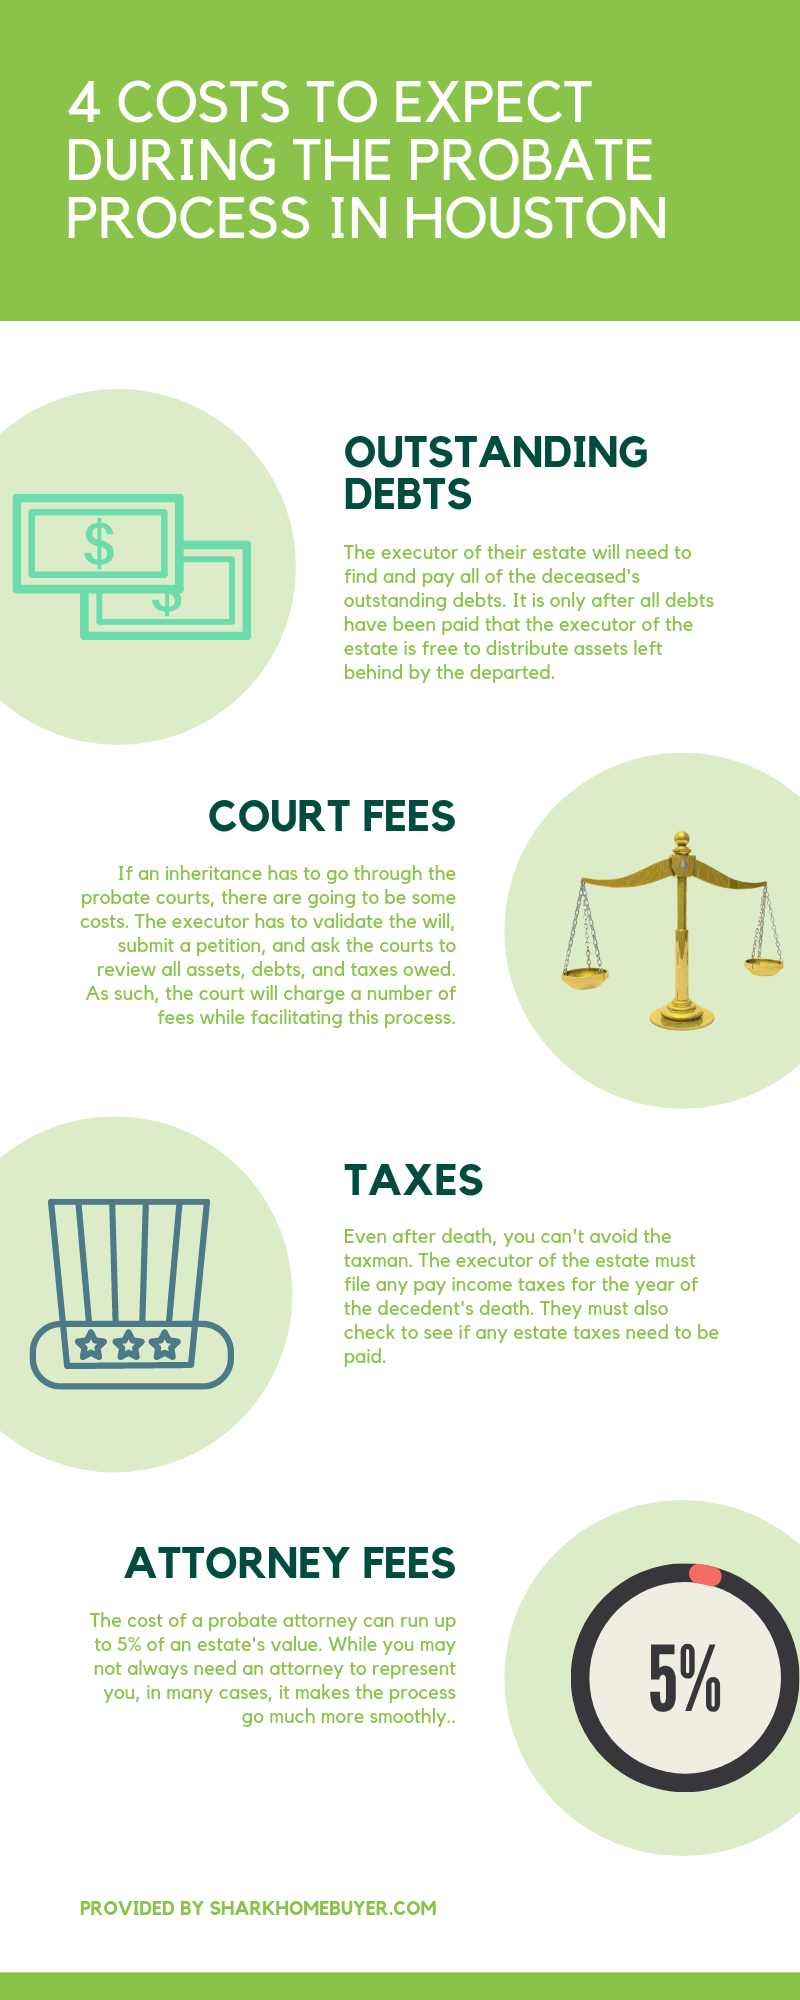 Infographic showcasing the 4 costs to expect during a probate